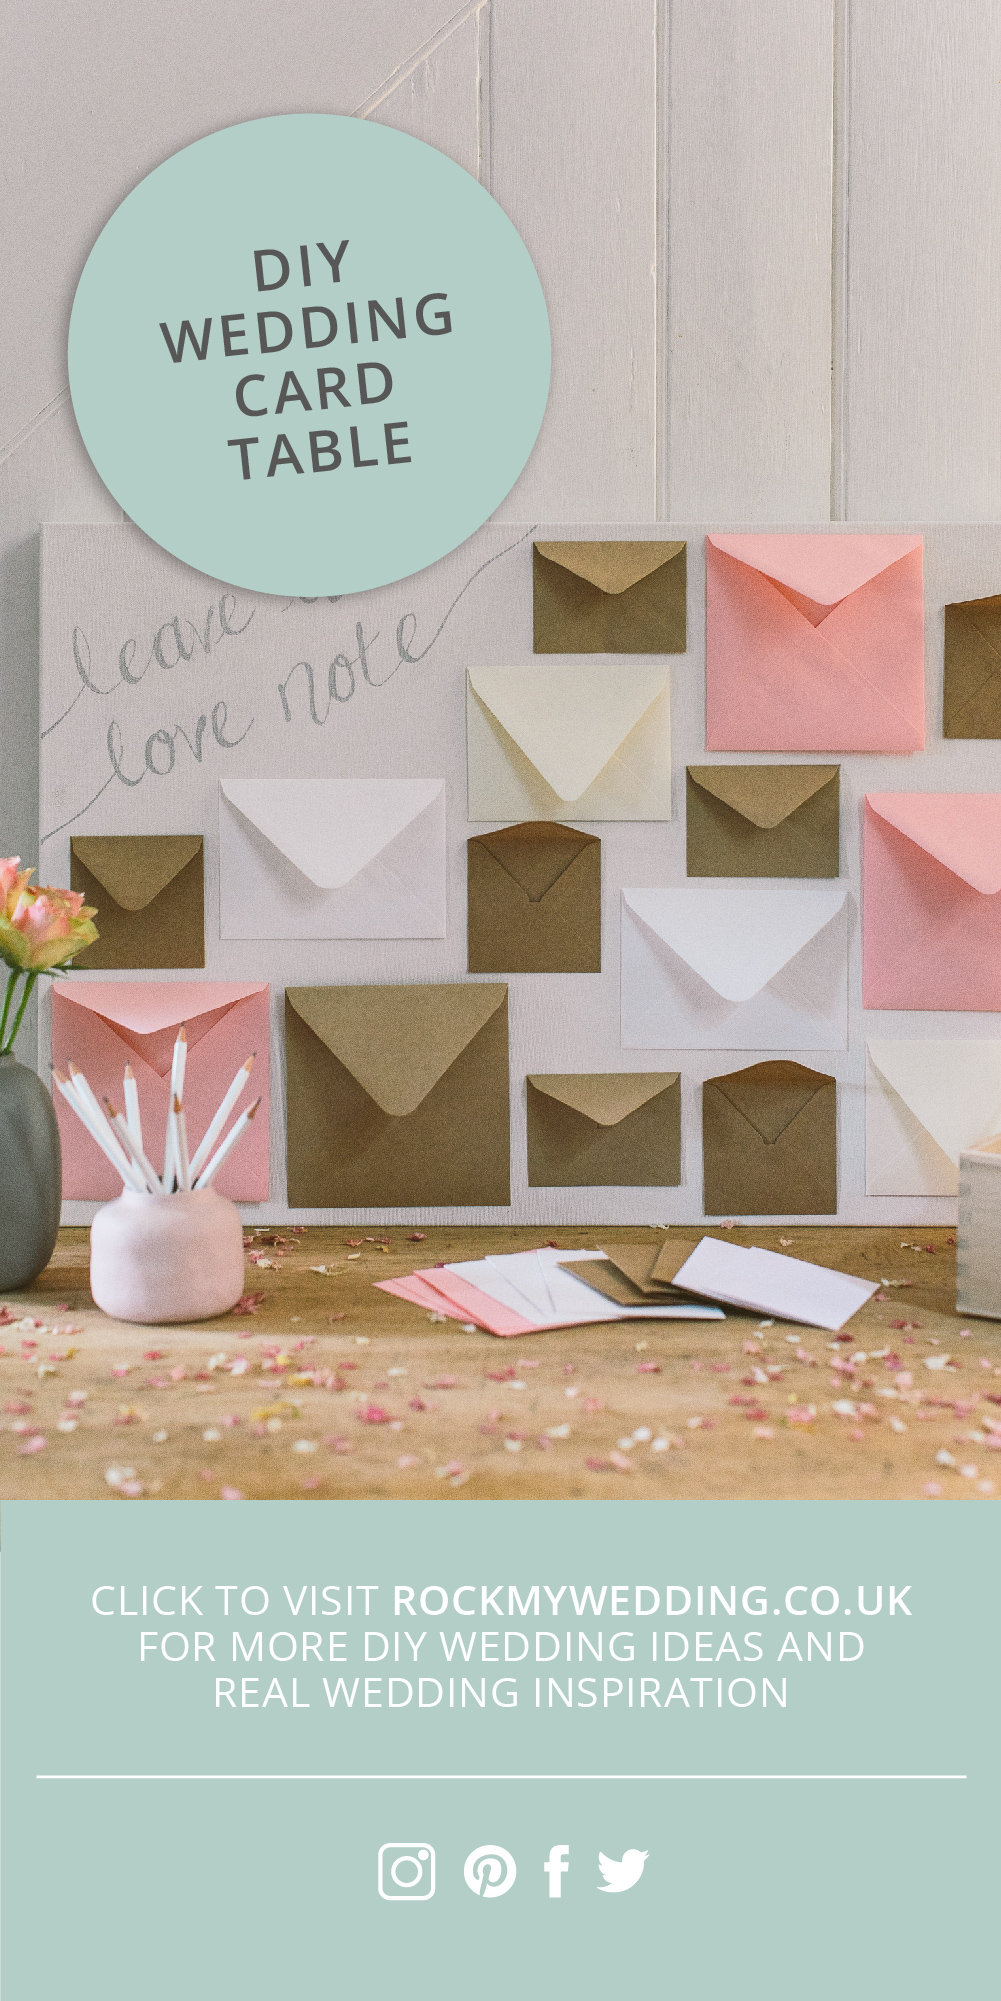 DIY Leave a Note Alternative Wedding Guest Book